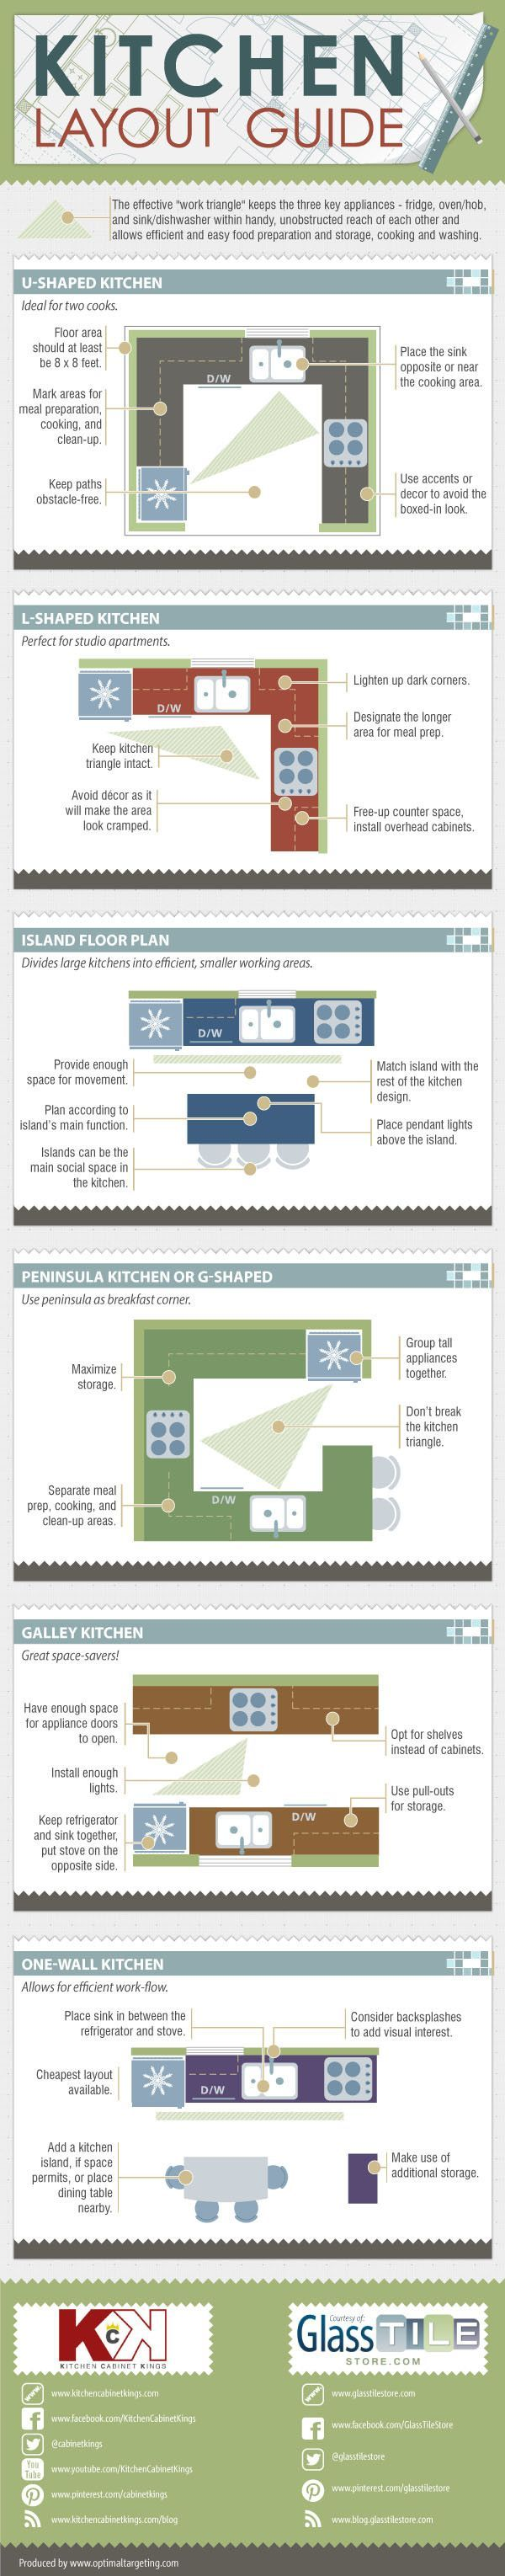 Kitchen Layout Guide - www.homeology.co.za #interiordesign #decorideas #homedecor #makeyourhome #tipsforhome #Kitchen #layout